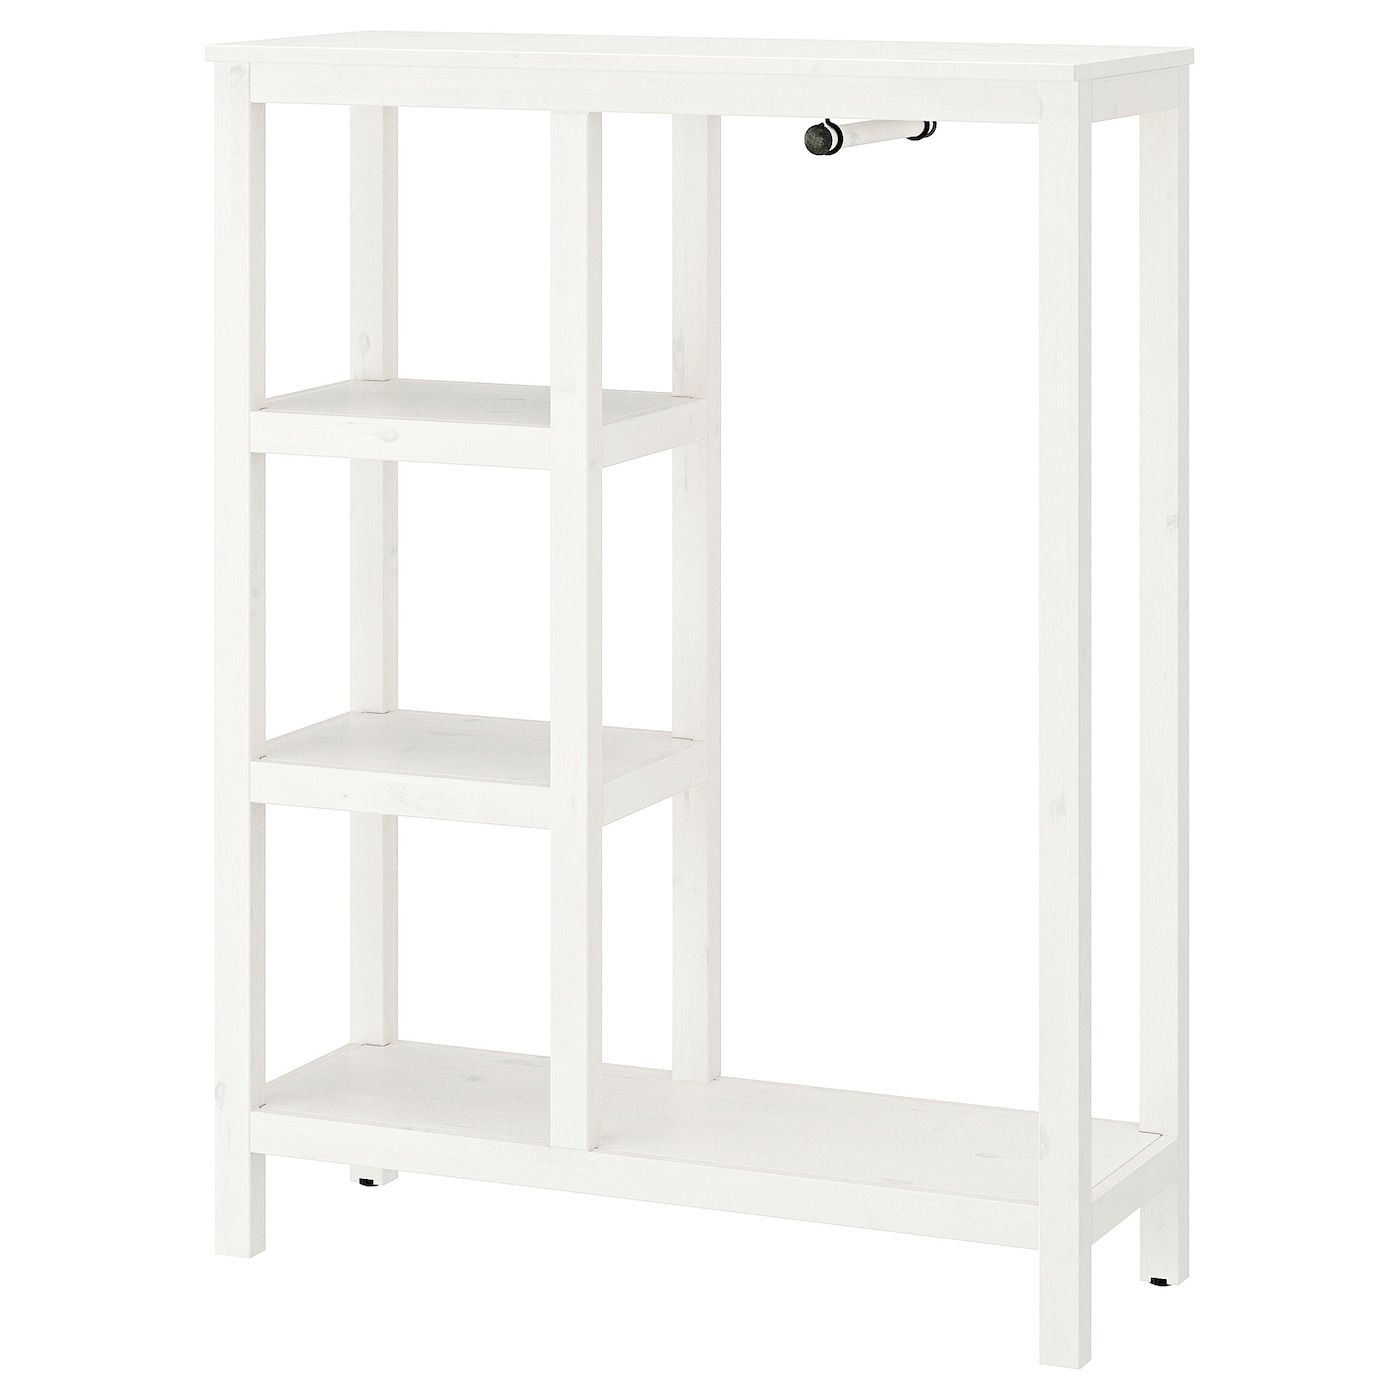 Hemnes Open Wardrobe White Stained Offene Garderobe Hemnes